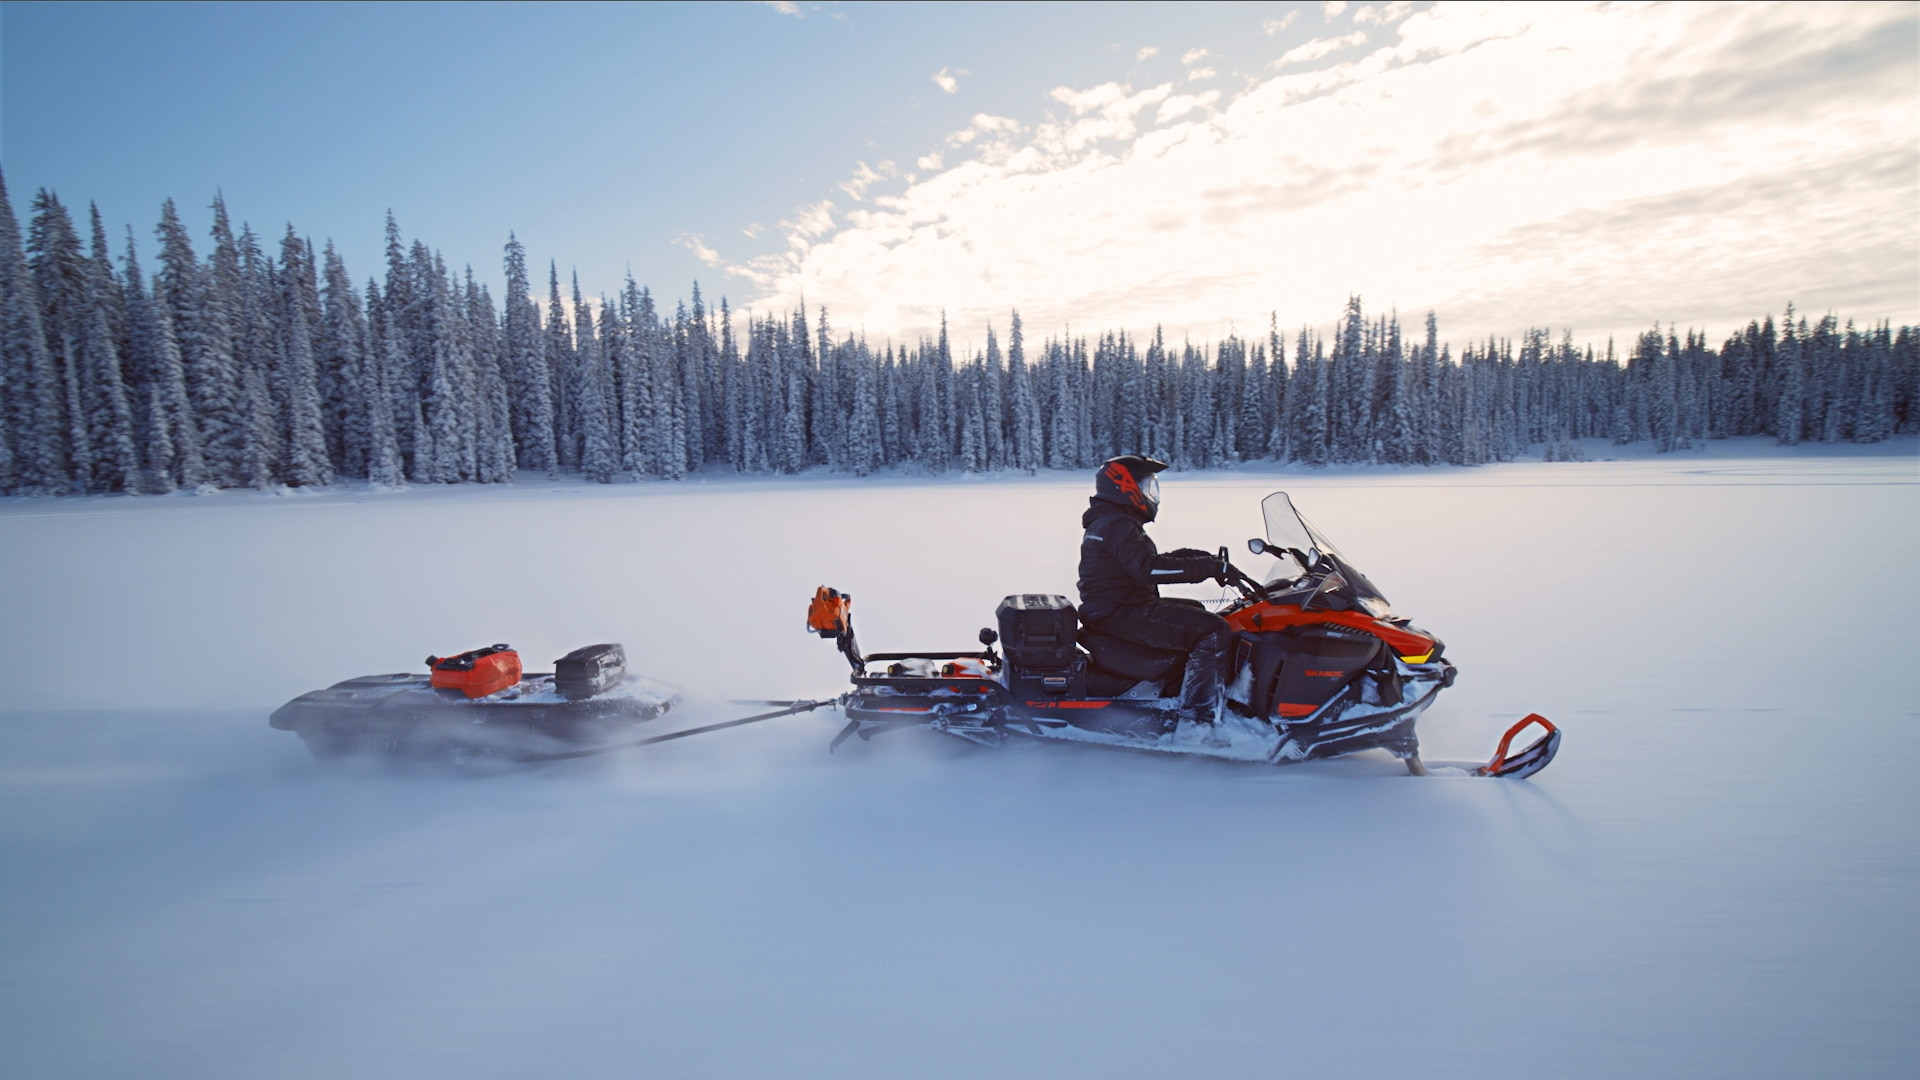 When do snowmobile trails open?